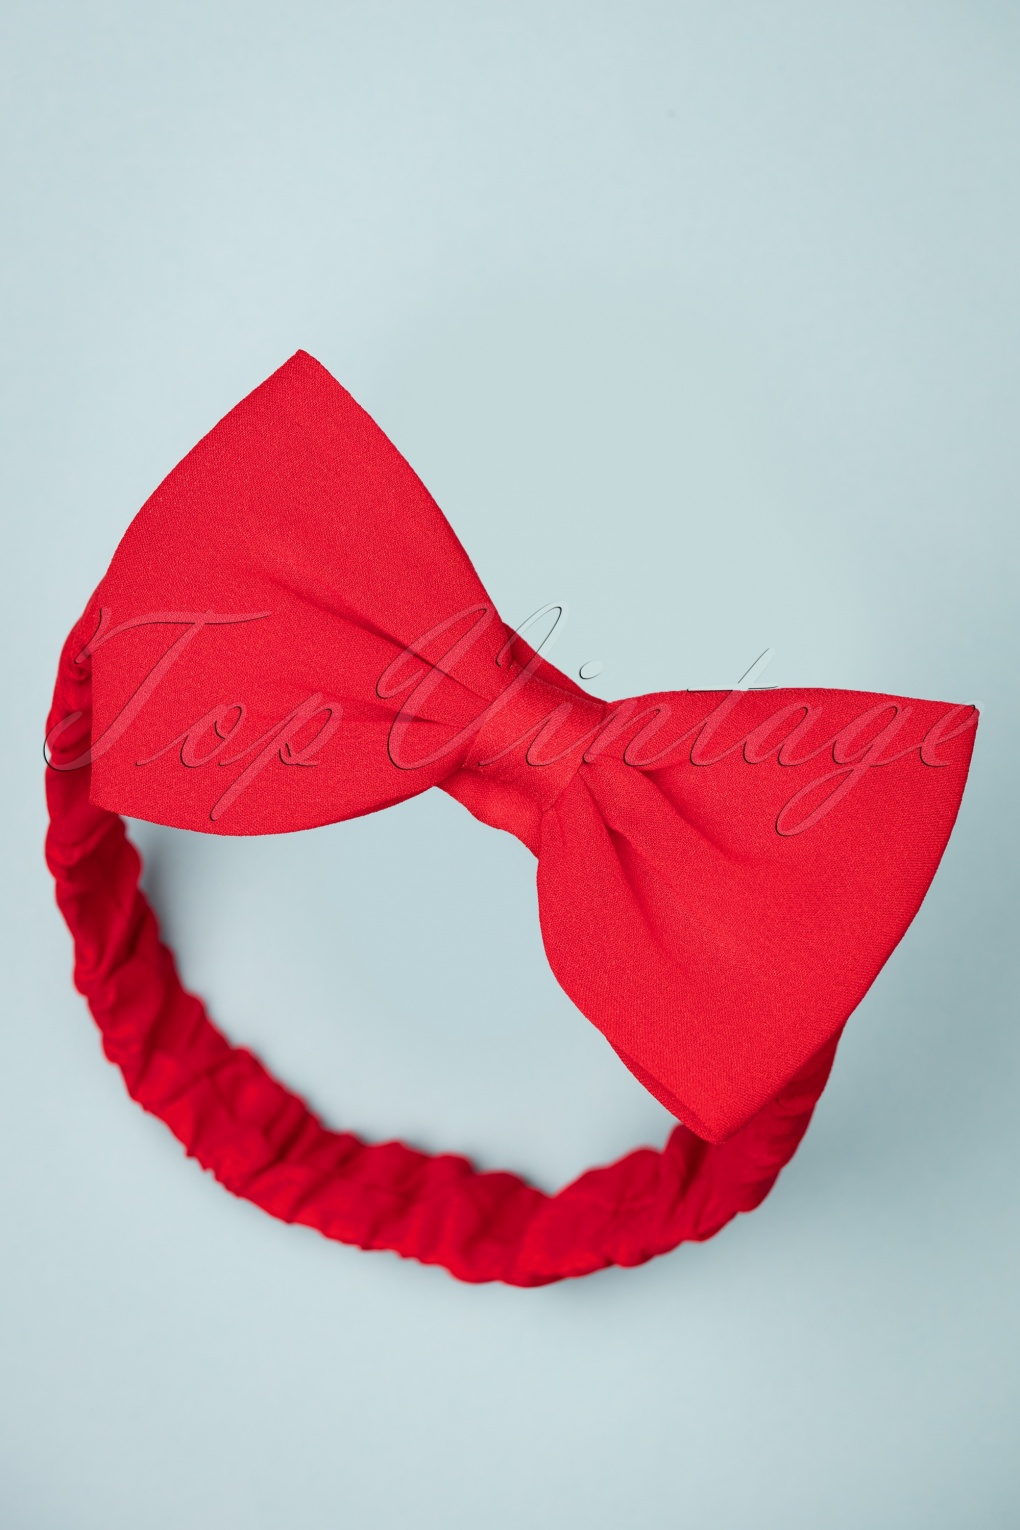 1940s Hair Snoods- Buy, Knit, Crochet or Sew a Snood 50s Dionne Bow Head Band in Lipstick Red £6.29 AT vintagedancer.com